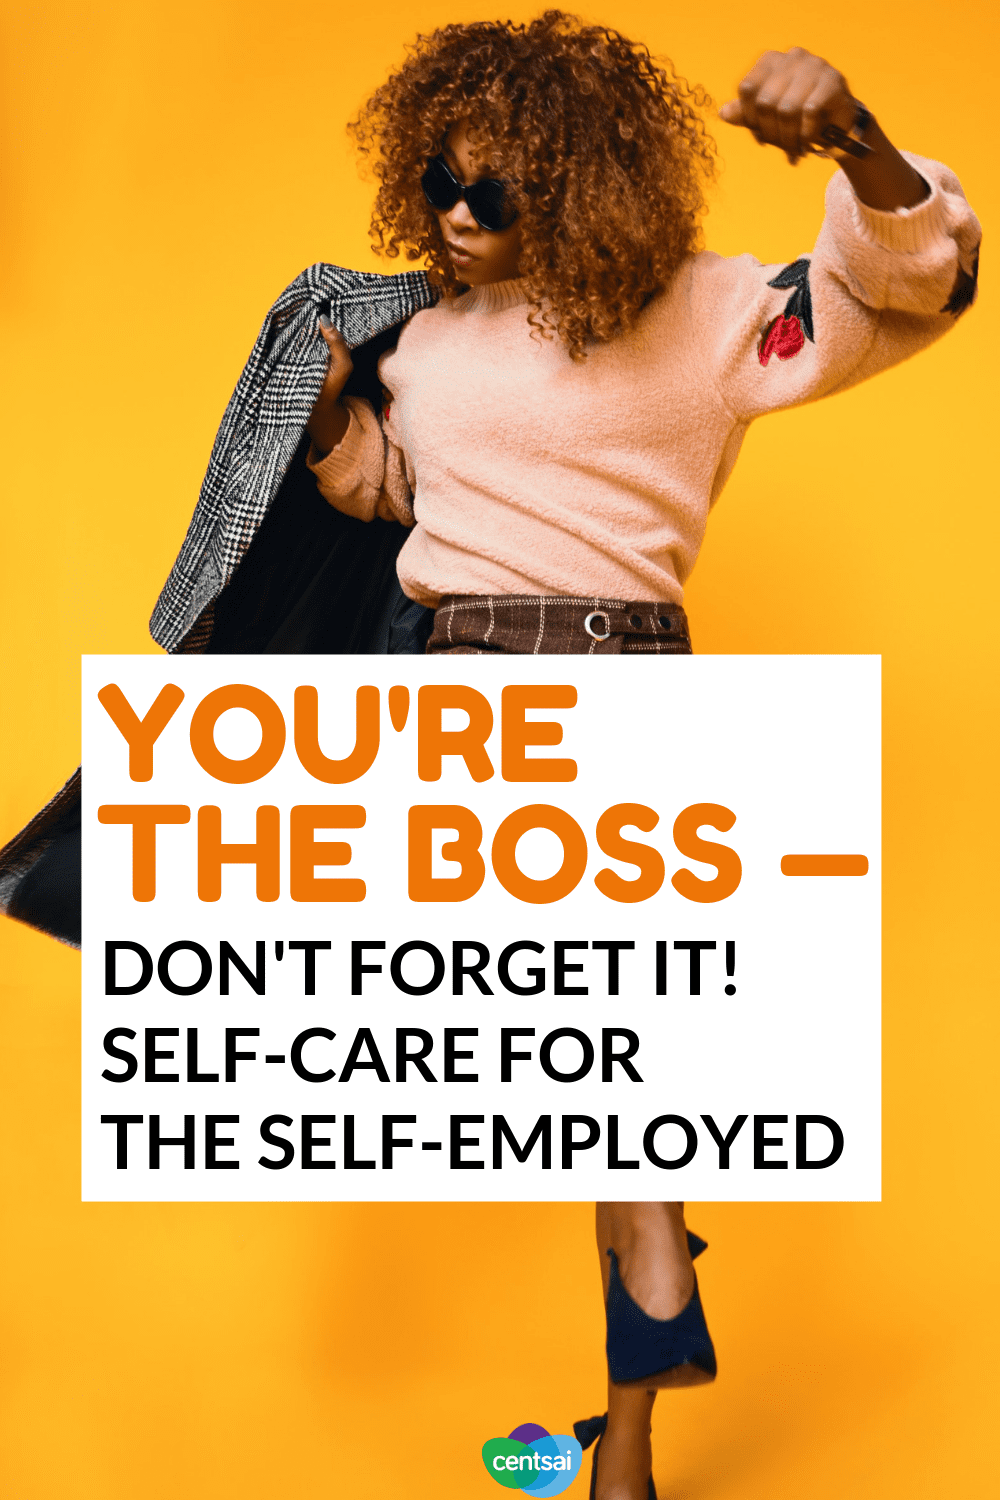 You're the Boss — Don't Forget It! Self-Care for the #SelfEmployed If you're self-employed, you know how hard self-care can be. Check out these tips on how to take care of yourself while still meeting your clients' needs. #entrepreneur #ideas